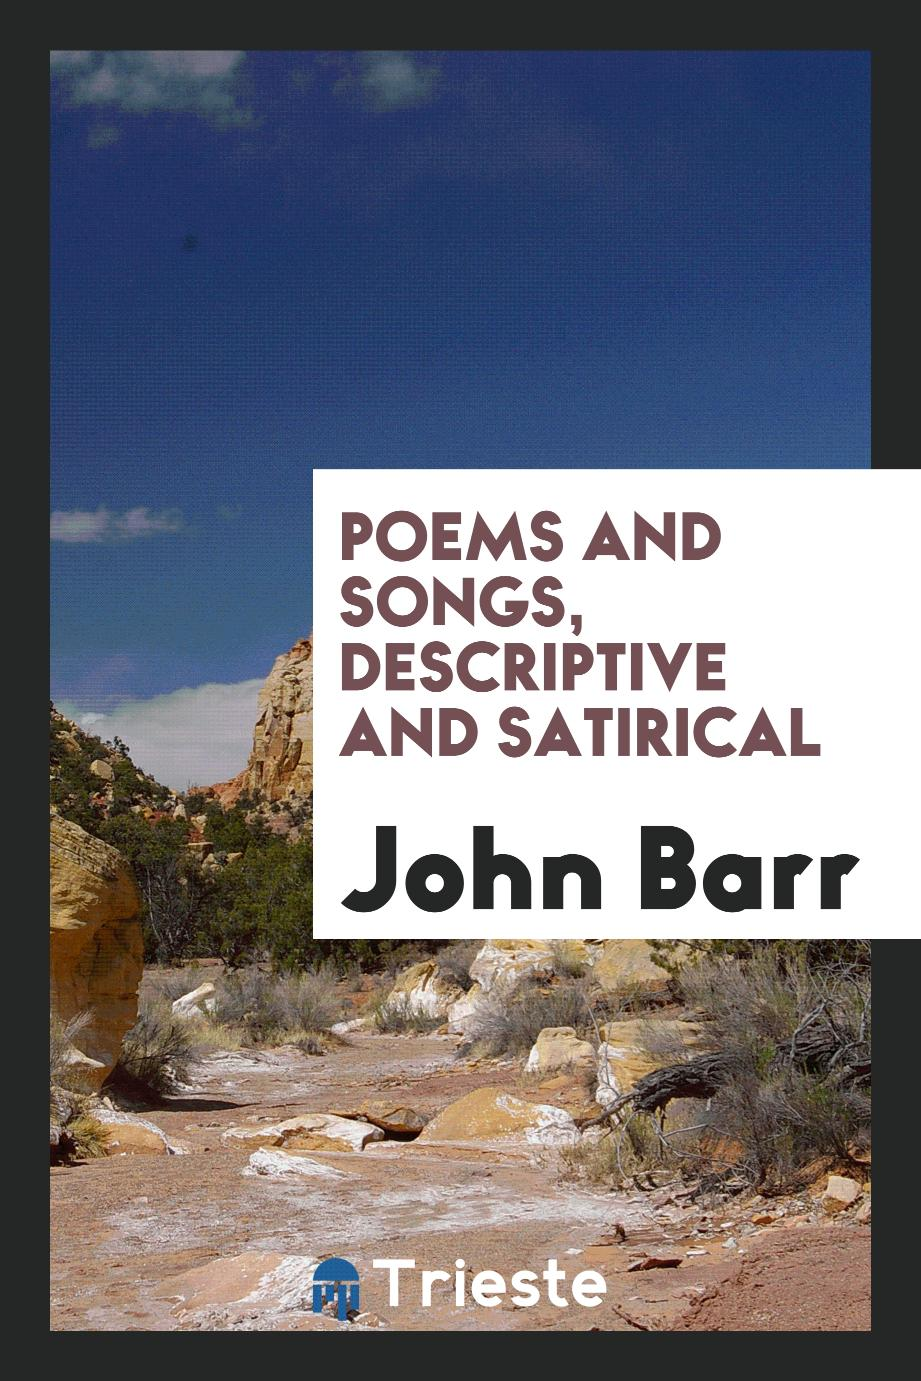 Poems and Songs, Descriptive and Satirical